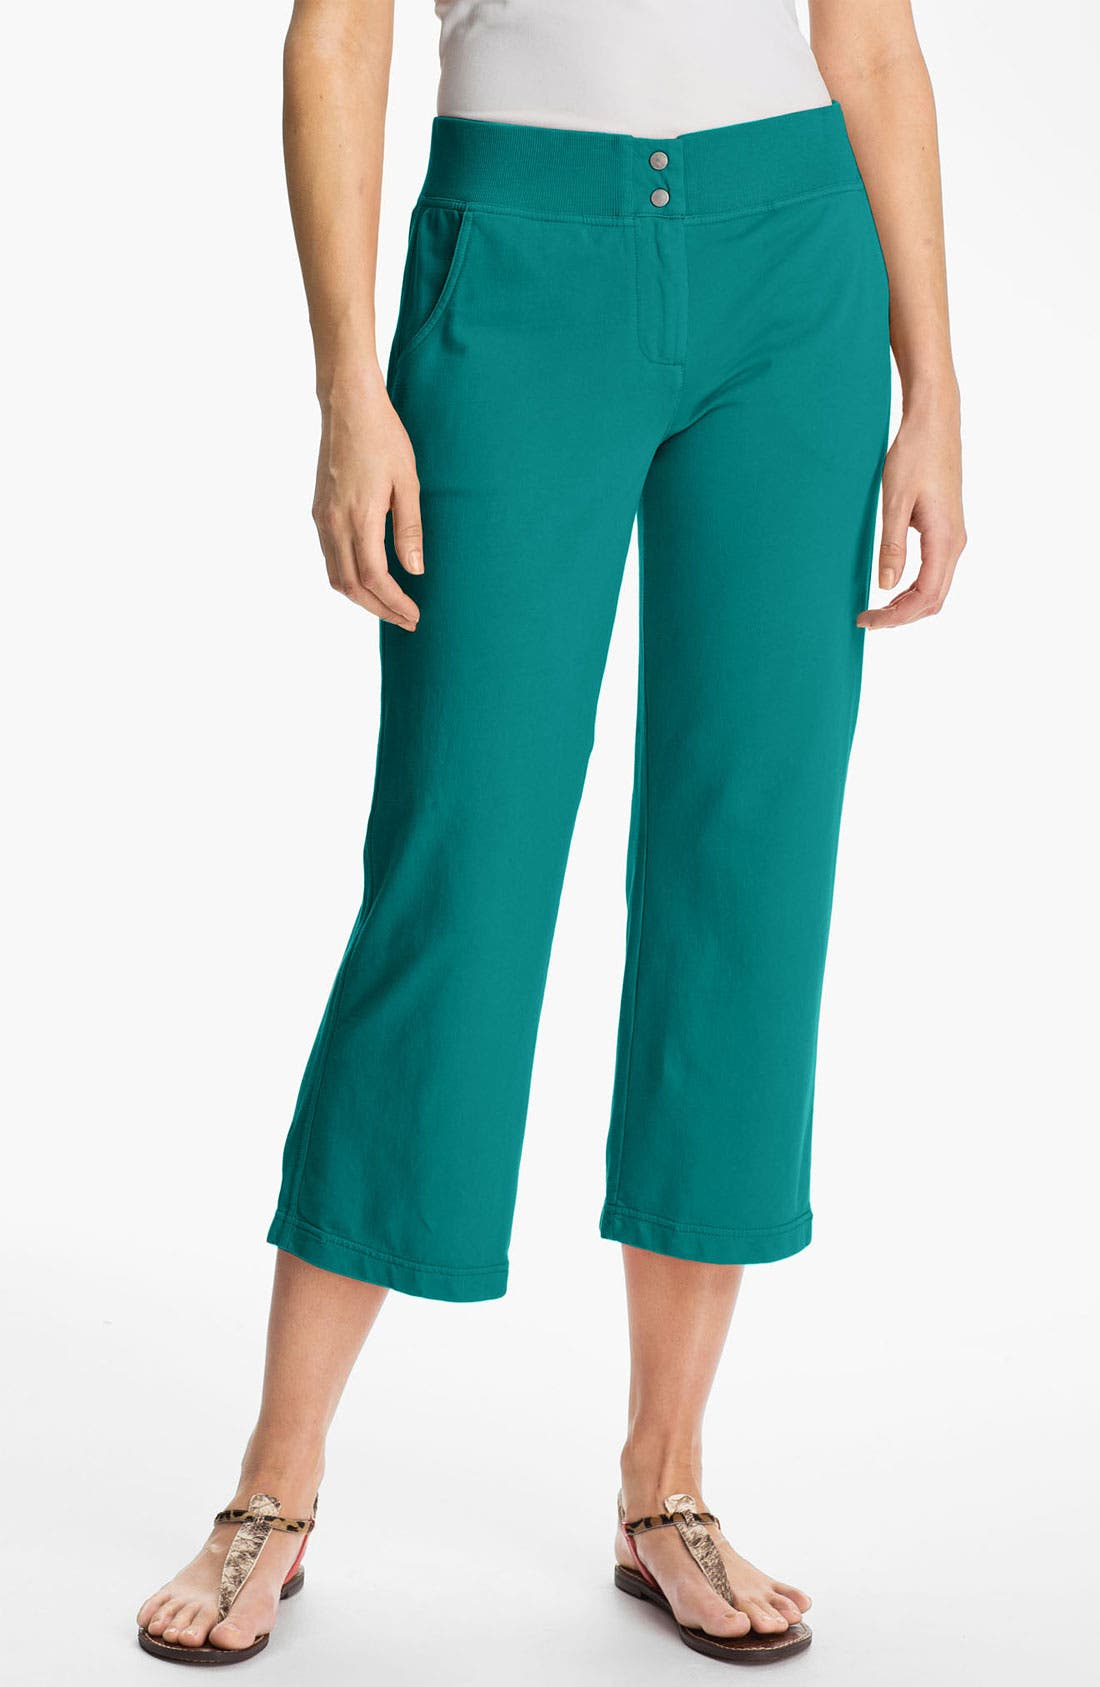 Alternate Image 1 Selected - Tommy Bahama Terry Crop Pants